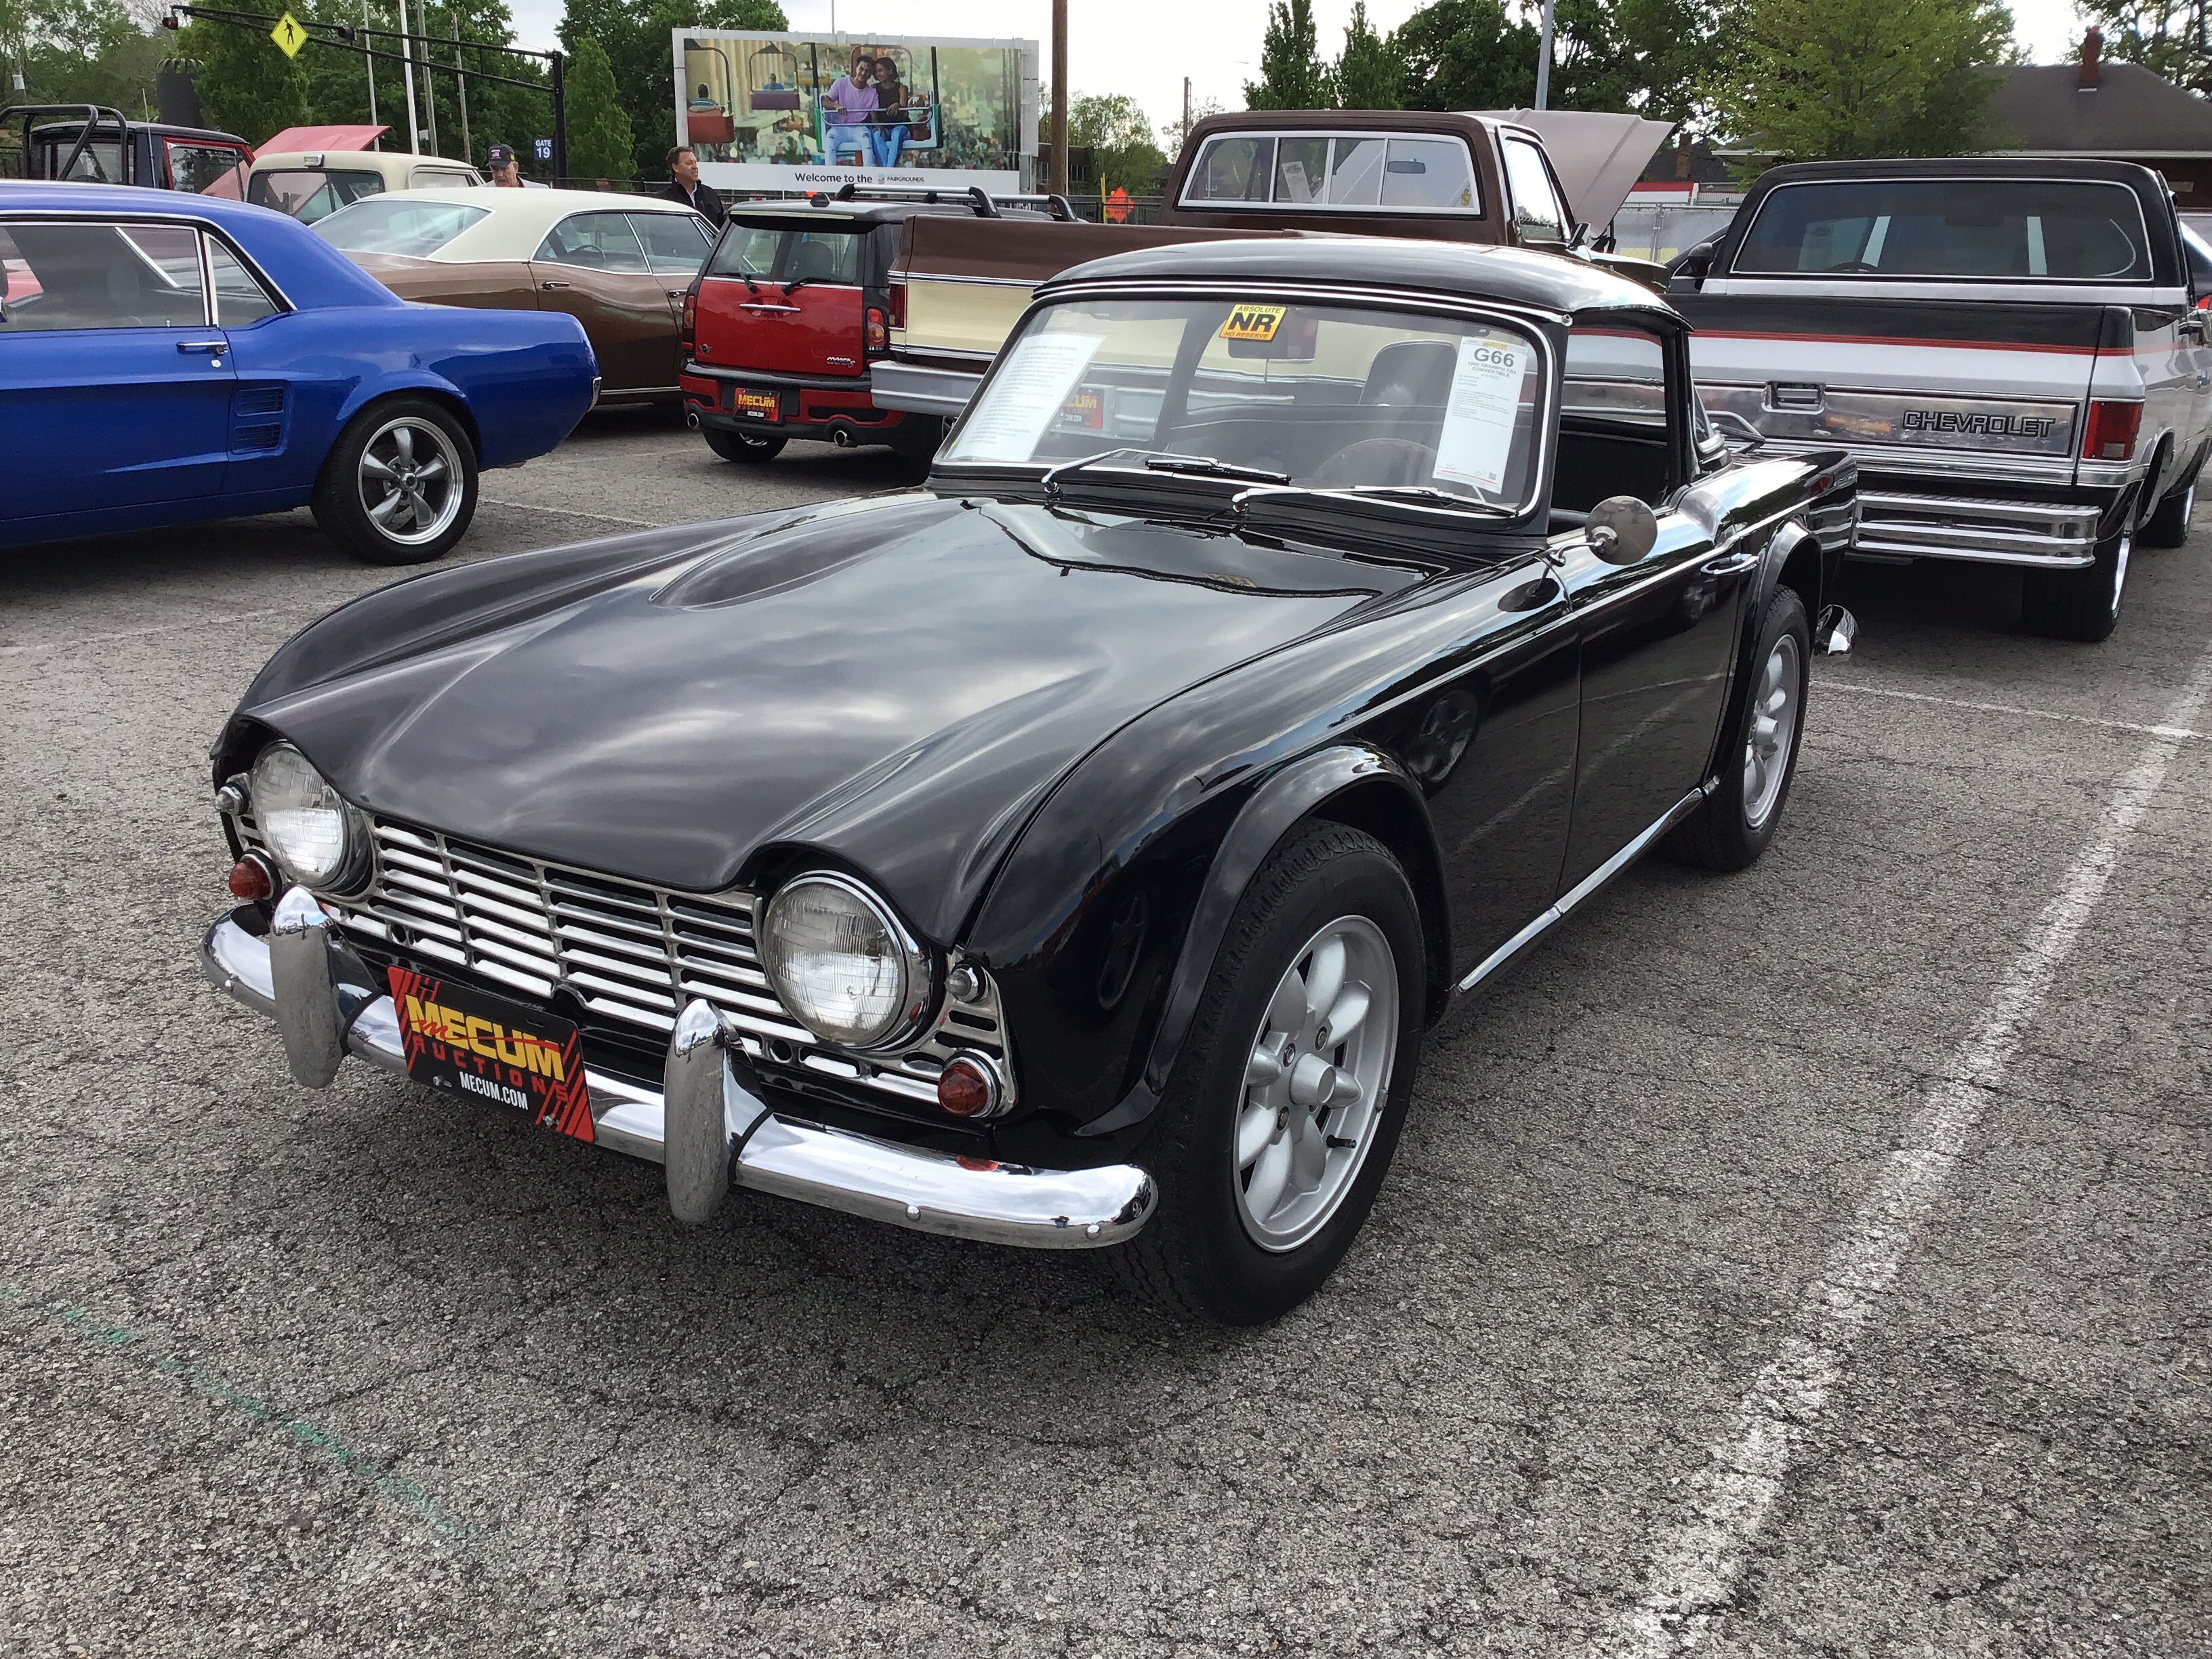 1964 Triumph TR4 Values | Hagerty Valuation Tool®